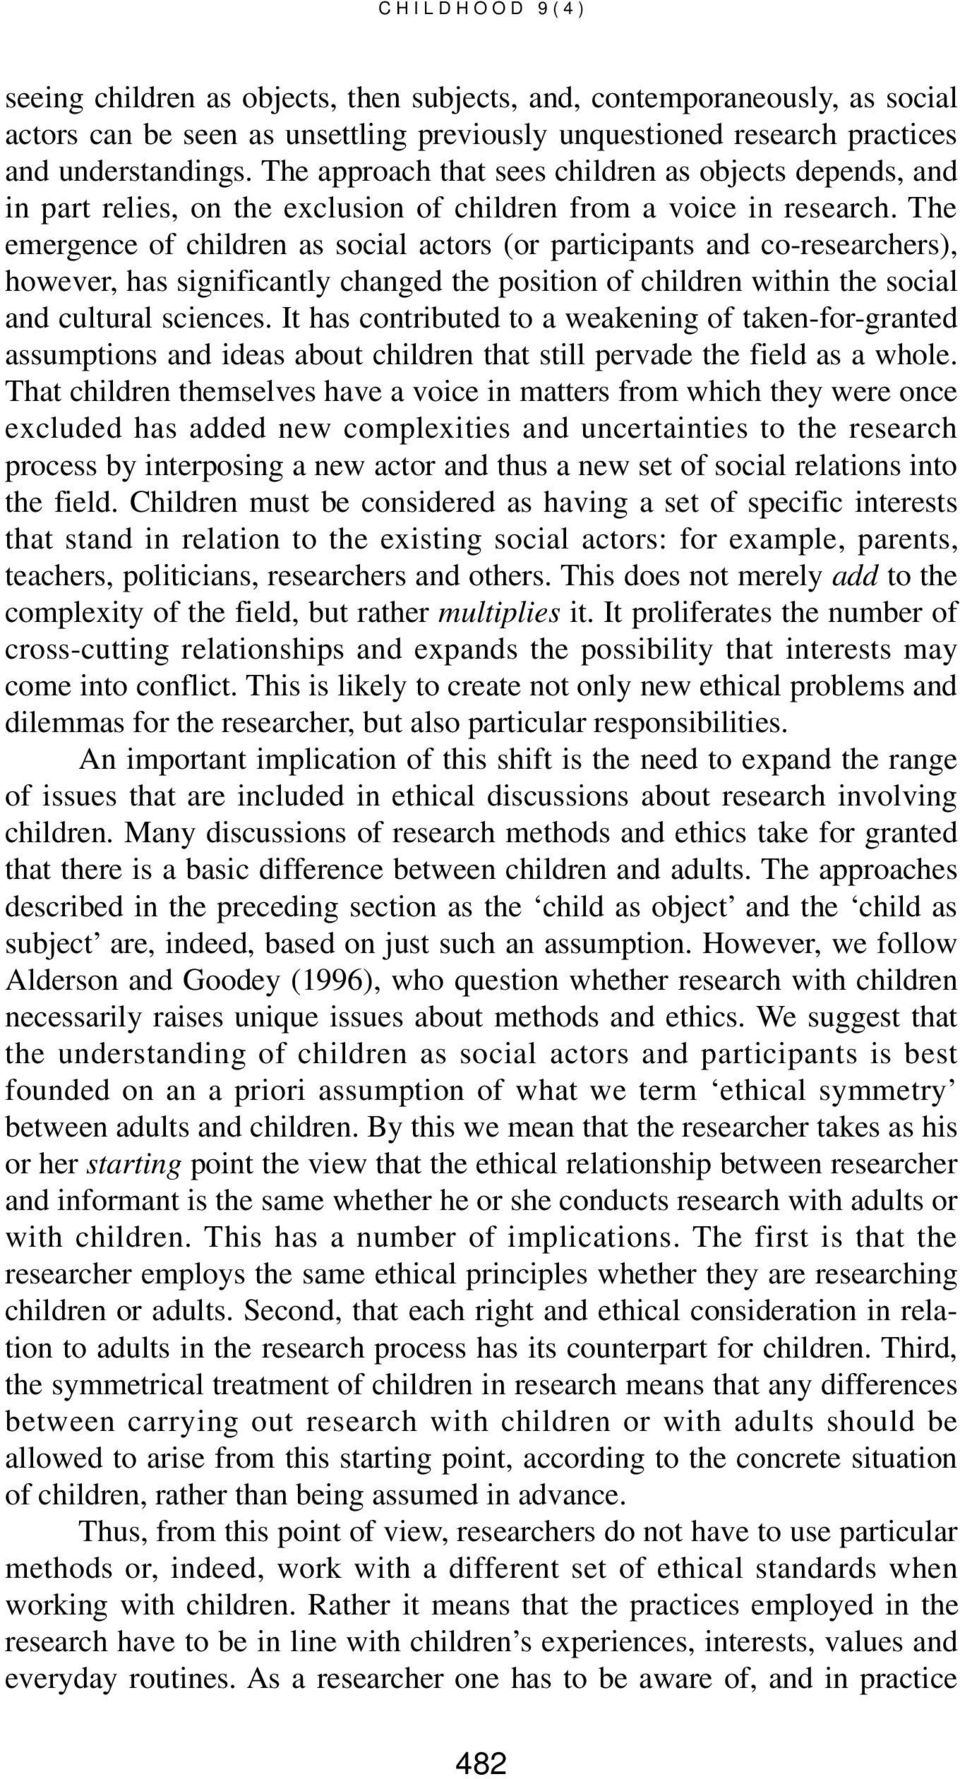 The emergence of children as social actors (or participants and co-researchers), however, has significantly changed the position of children within the social and cultural sciences.